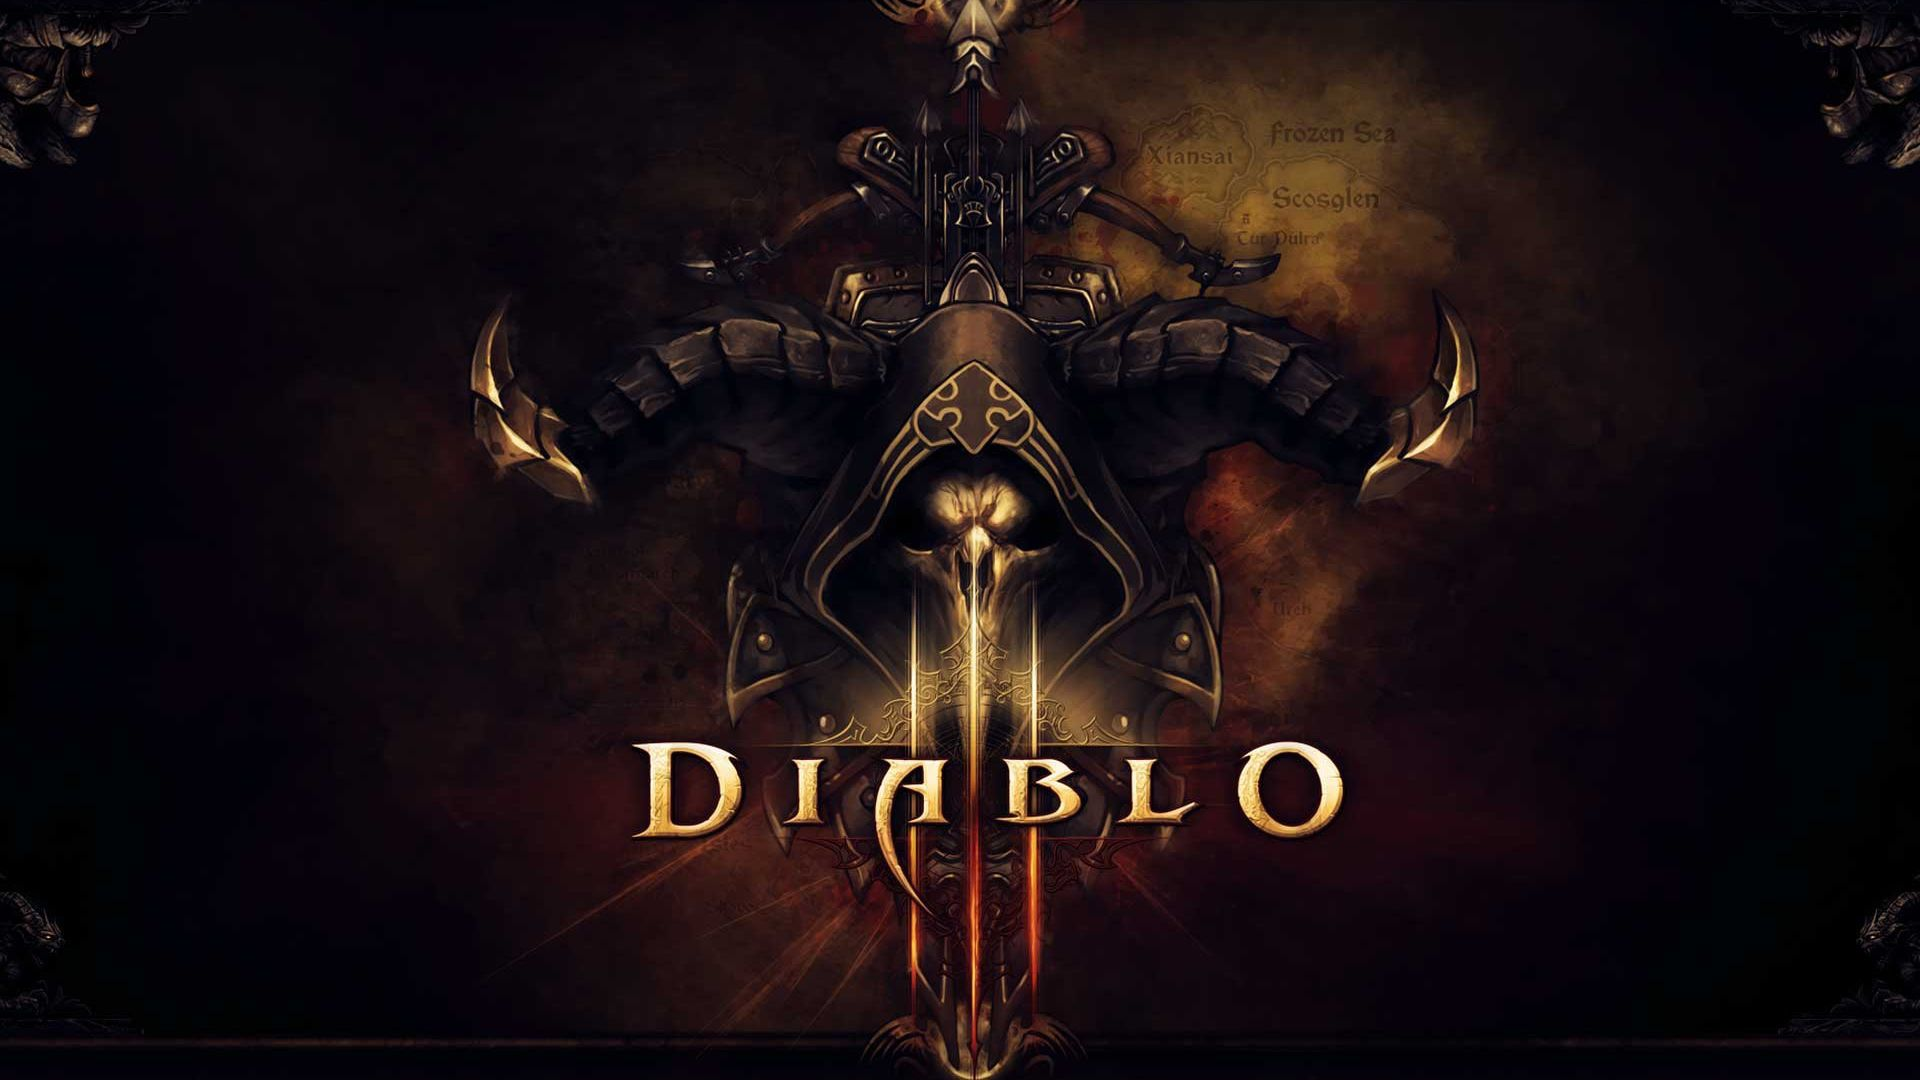 diablo wallpaper 2560x1440 - photo #10